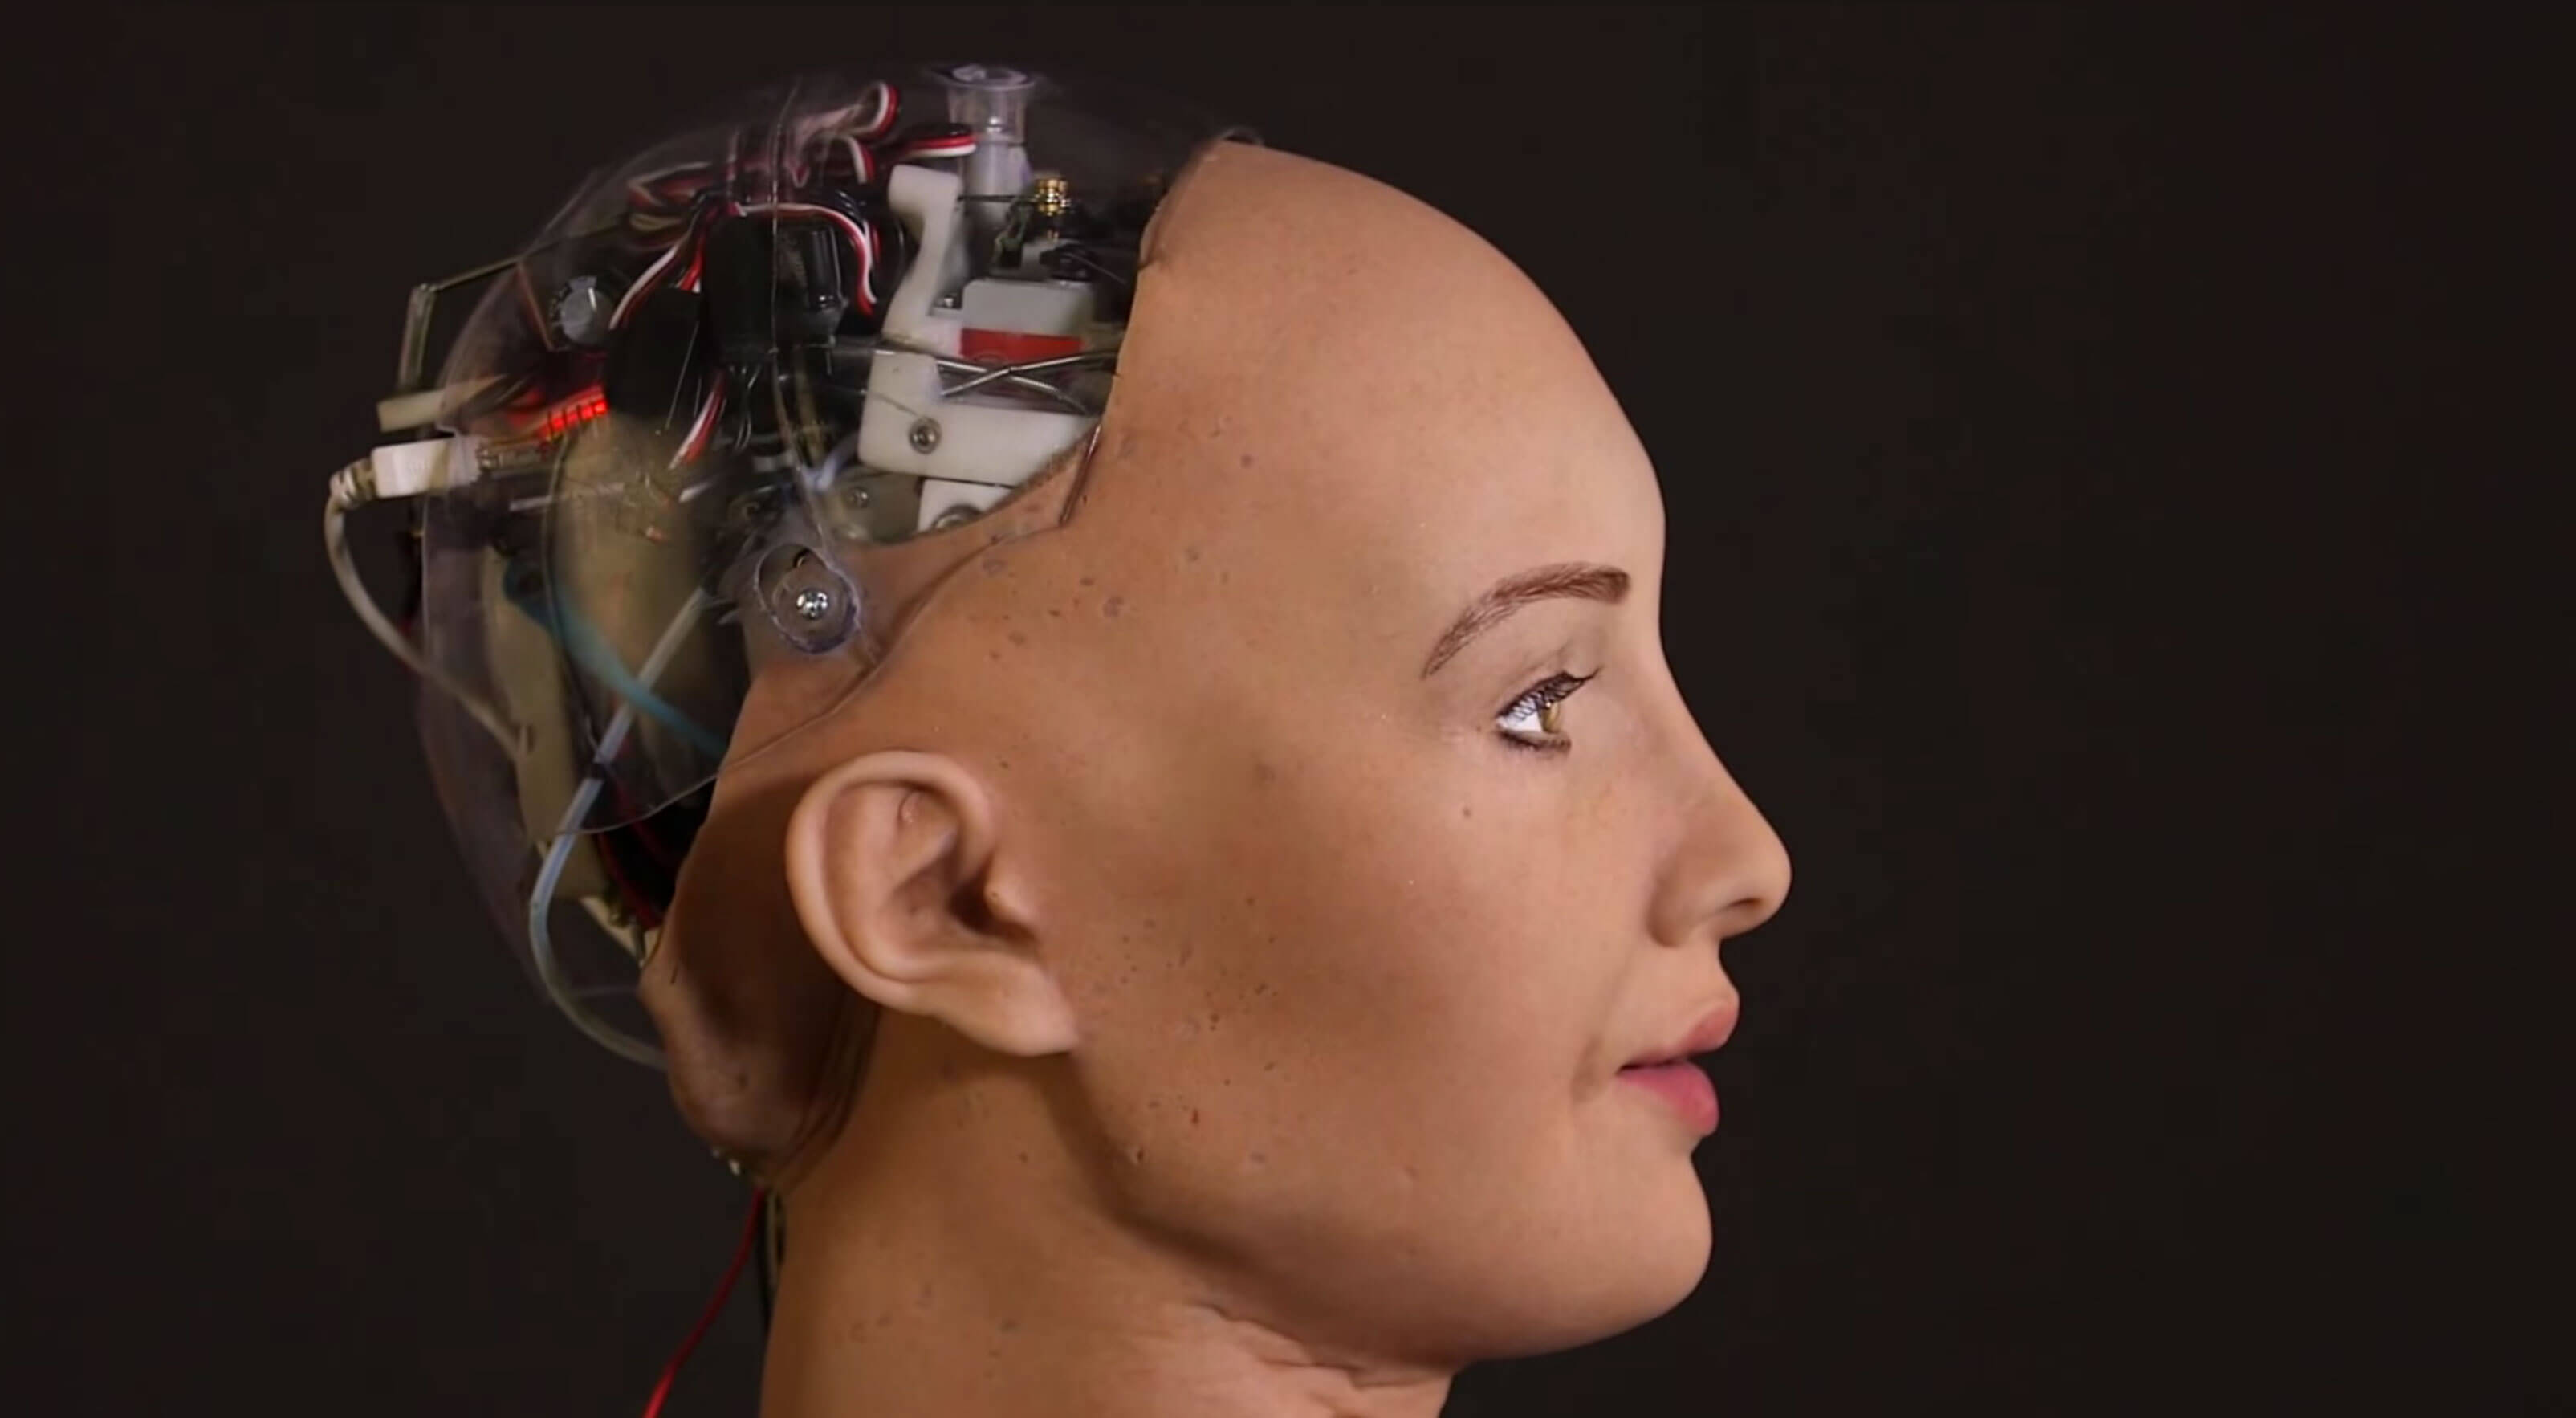 SingularityNET's Ben Goertzel has a grand vision for the future of AI